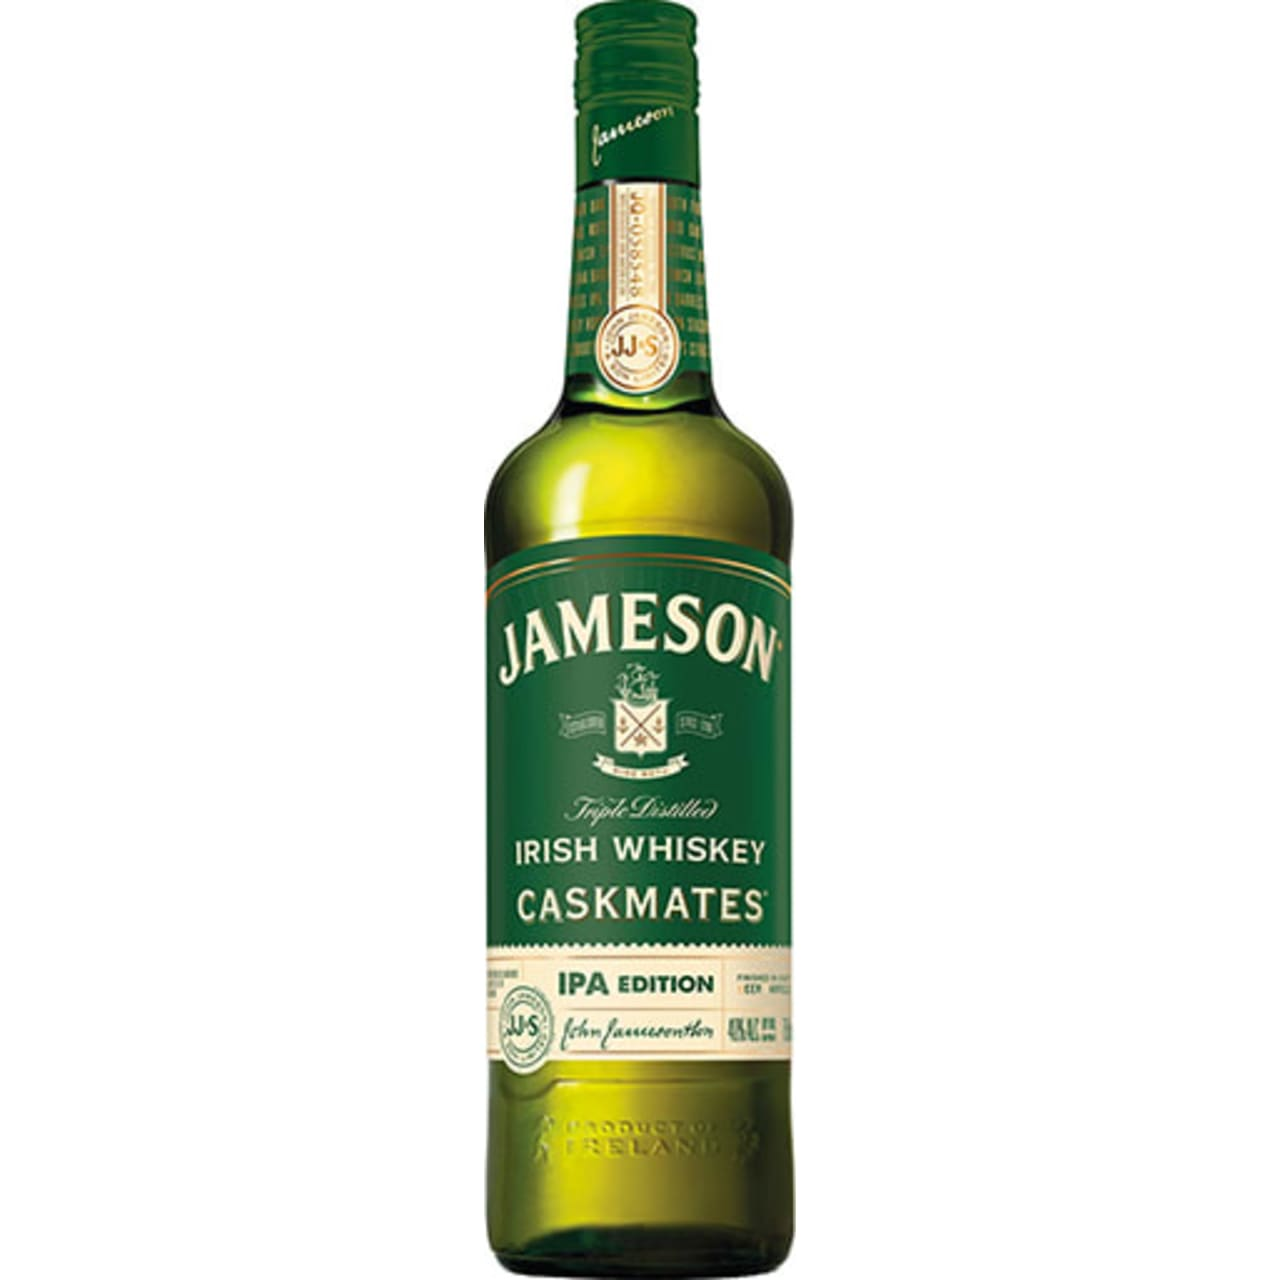 Product Image - Jameson Caskmates IPA Edition Whiskey